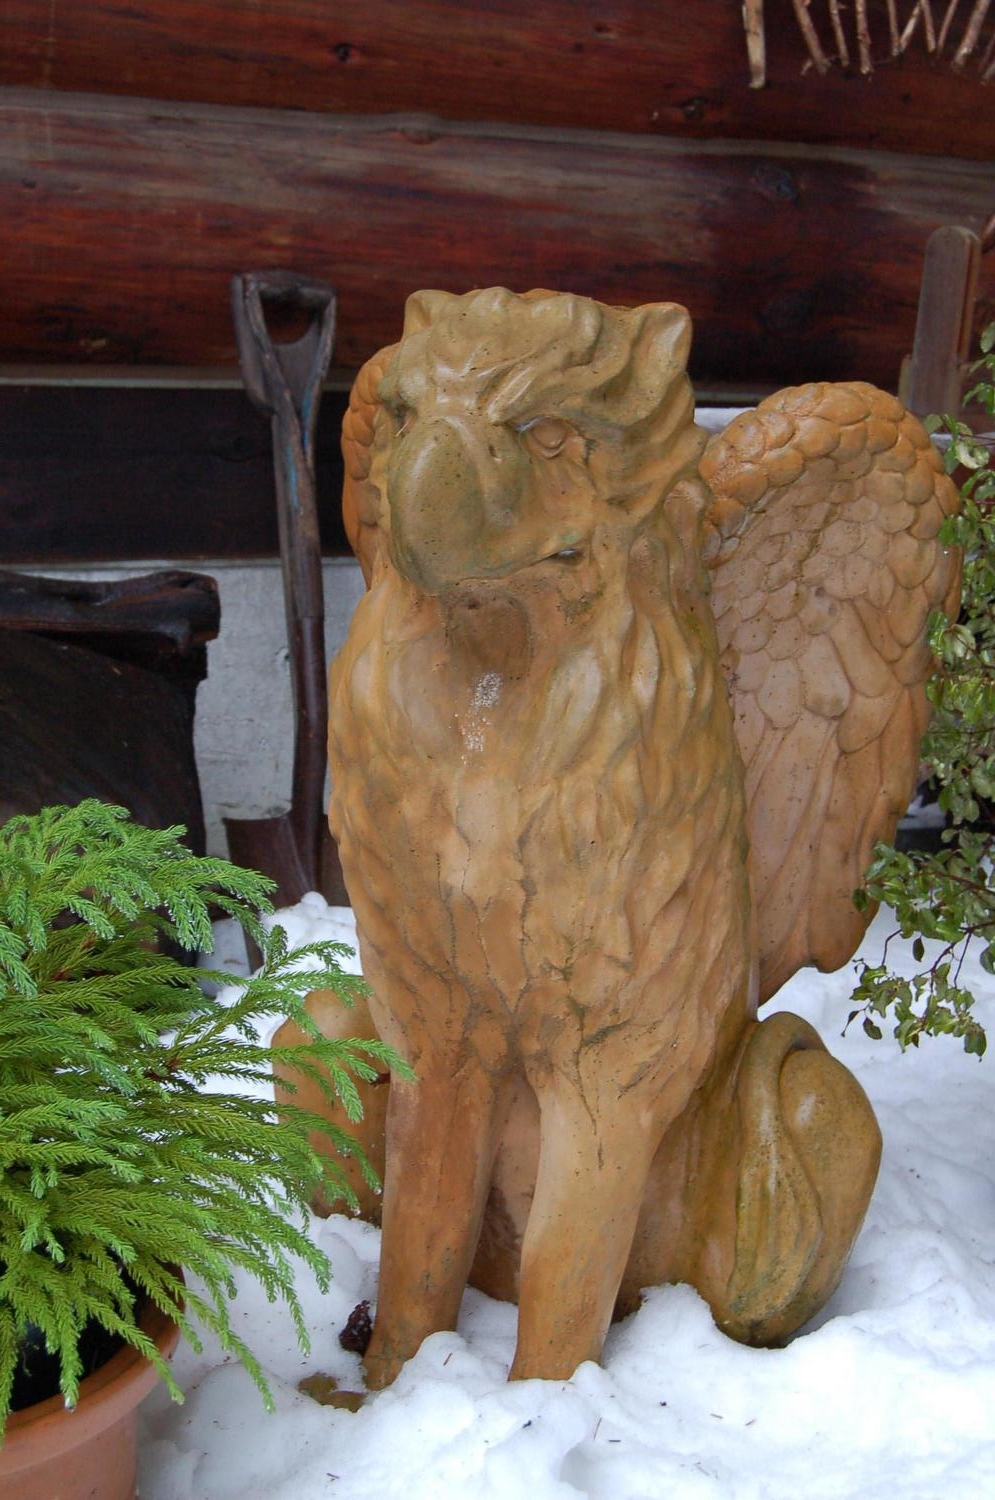 Zephyrus, one of our pet griffins